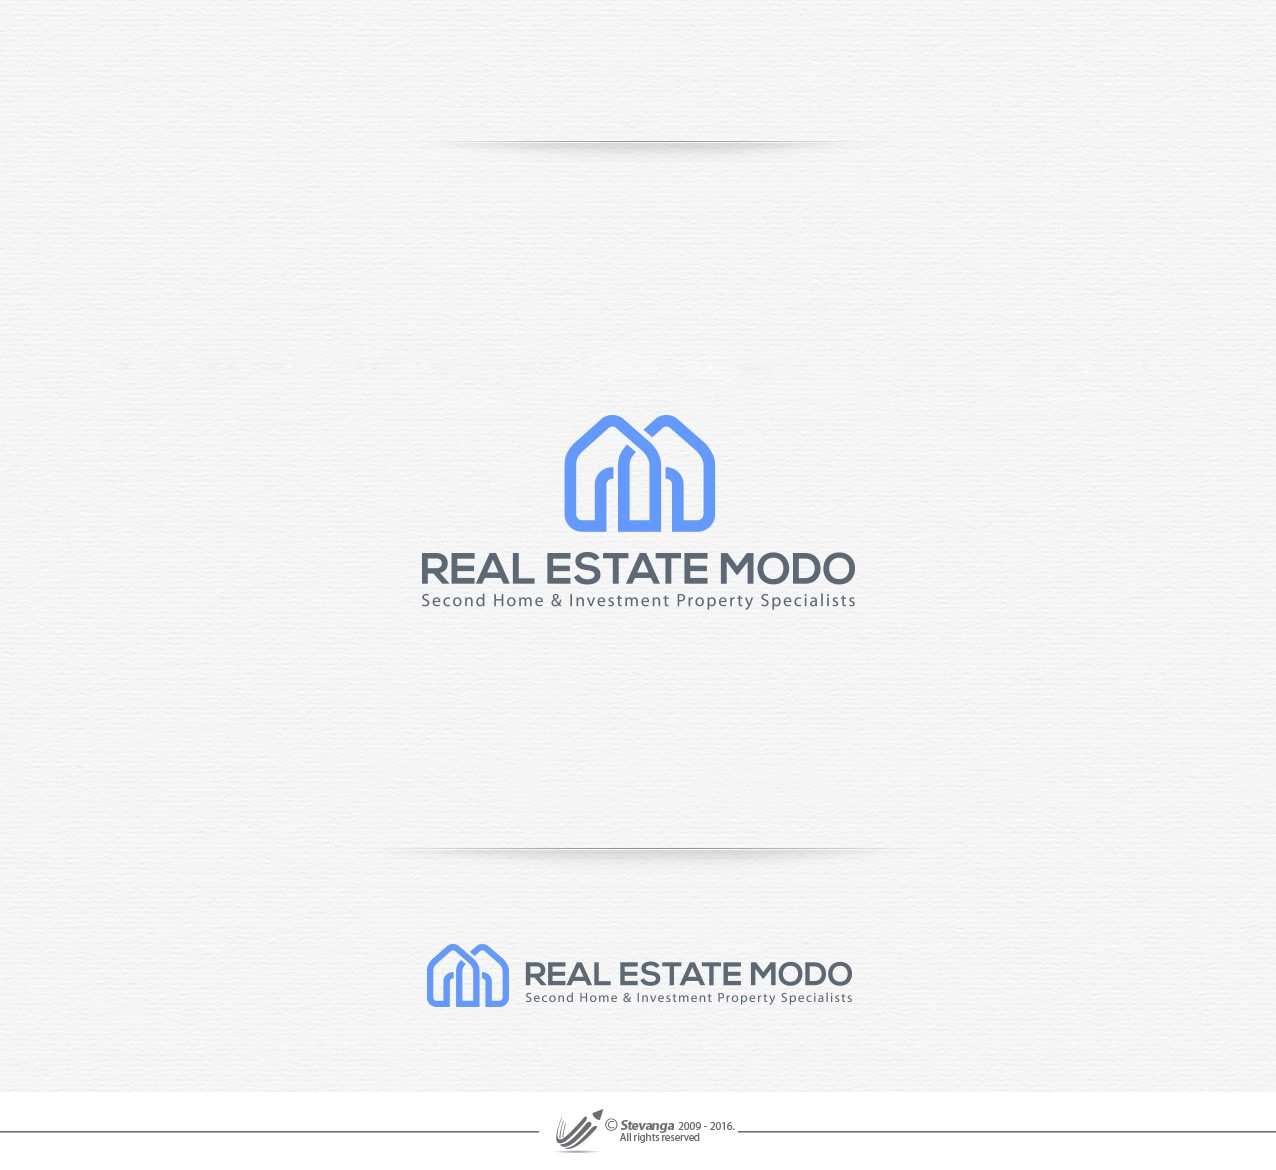 New Modern Real Estate Co